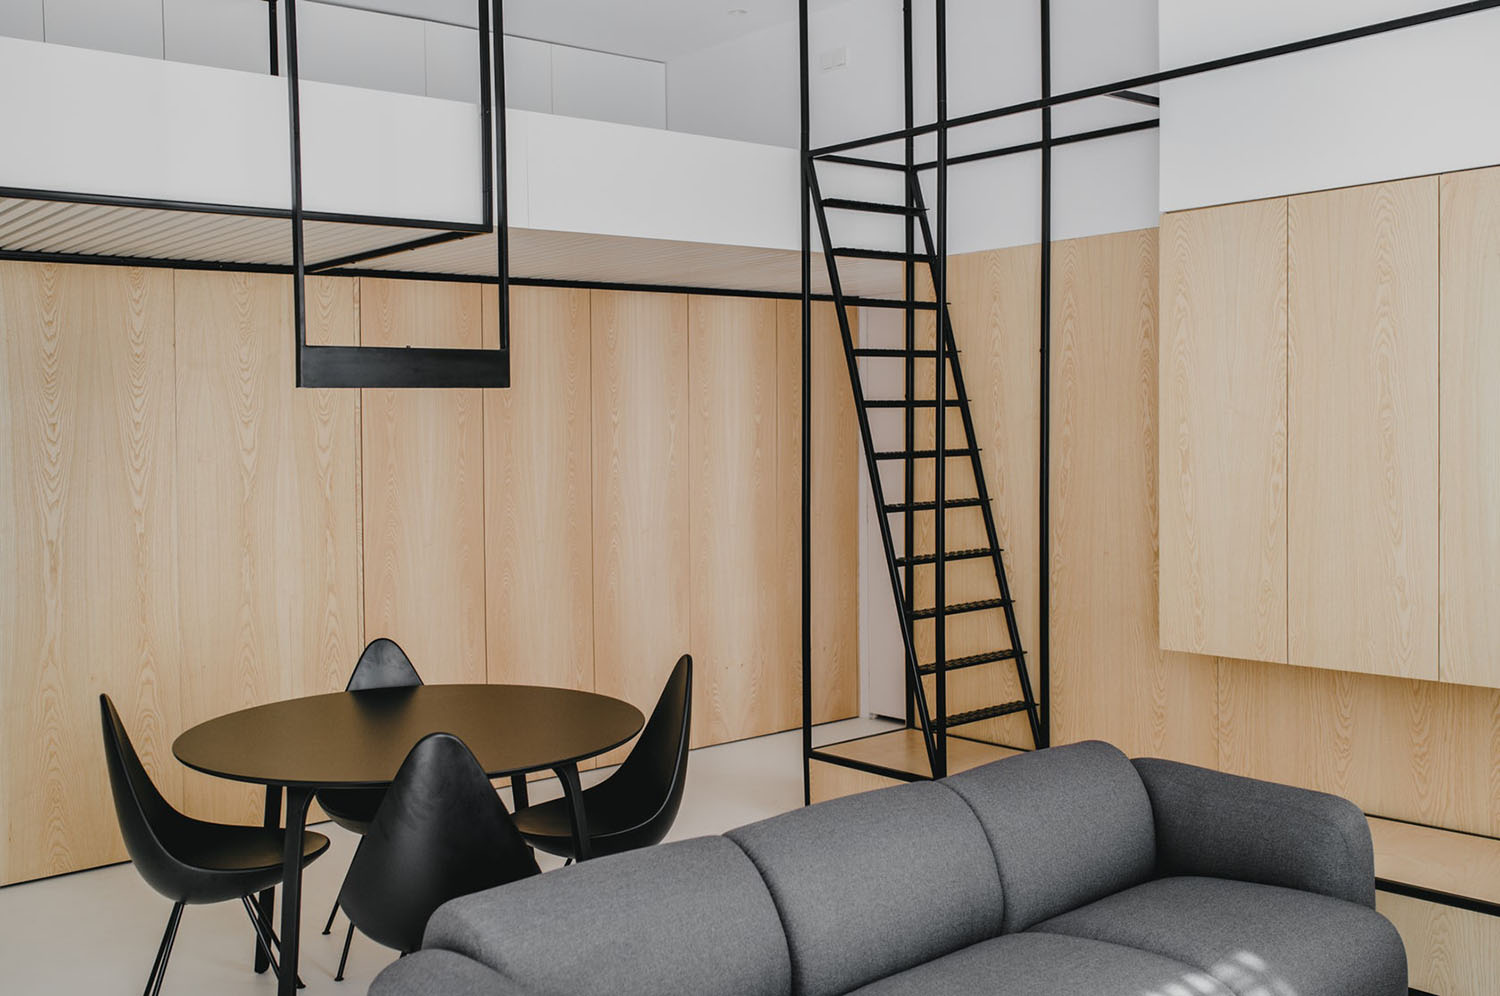 iGNANT_Architecture_MUS_Architects_Wireframe_Apartment_8